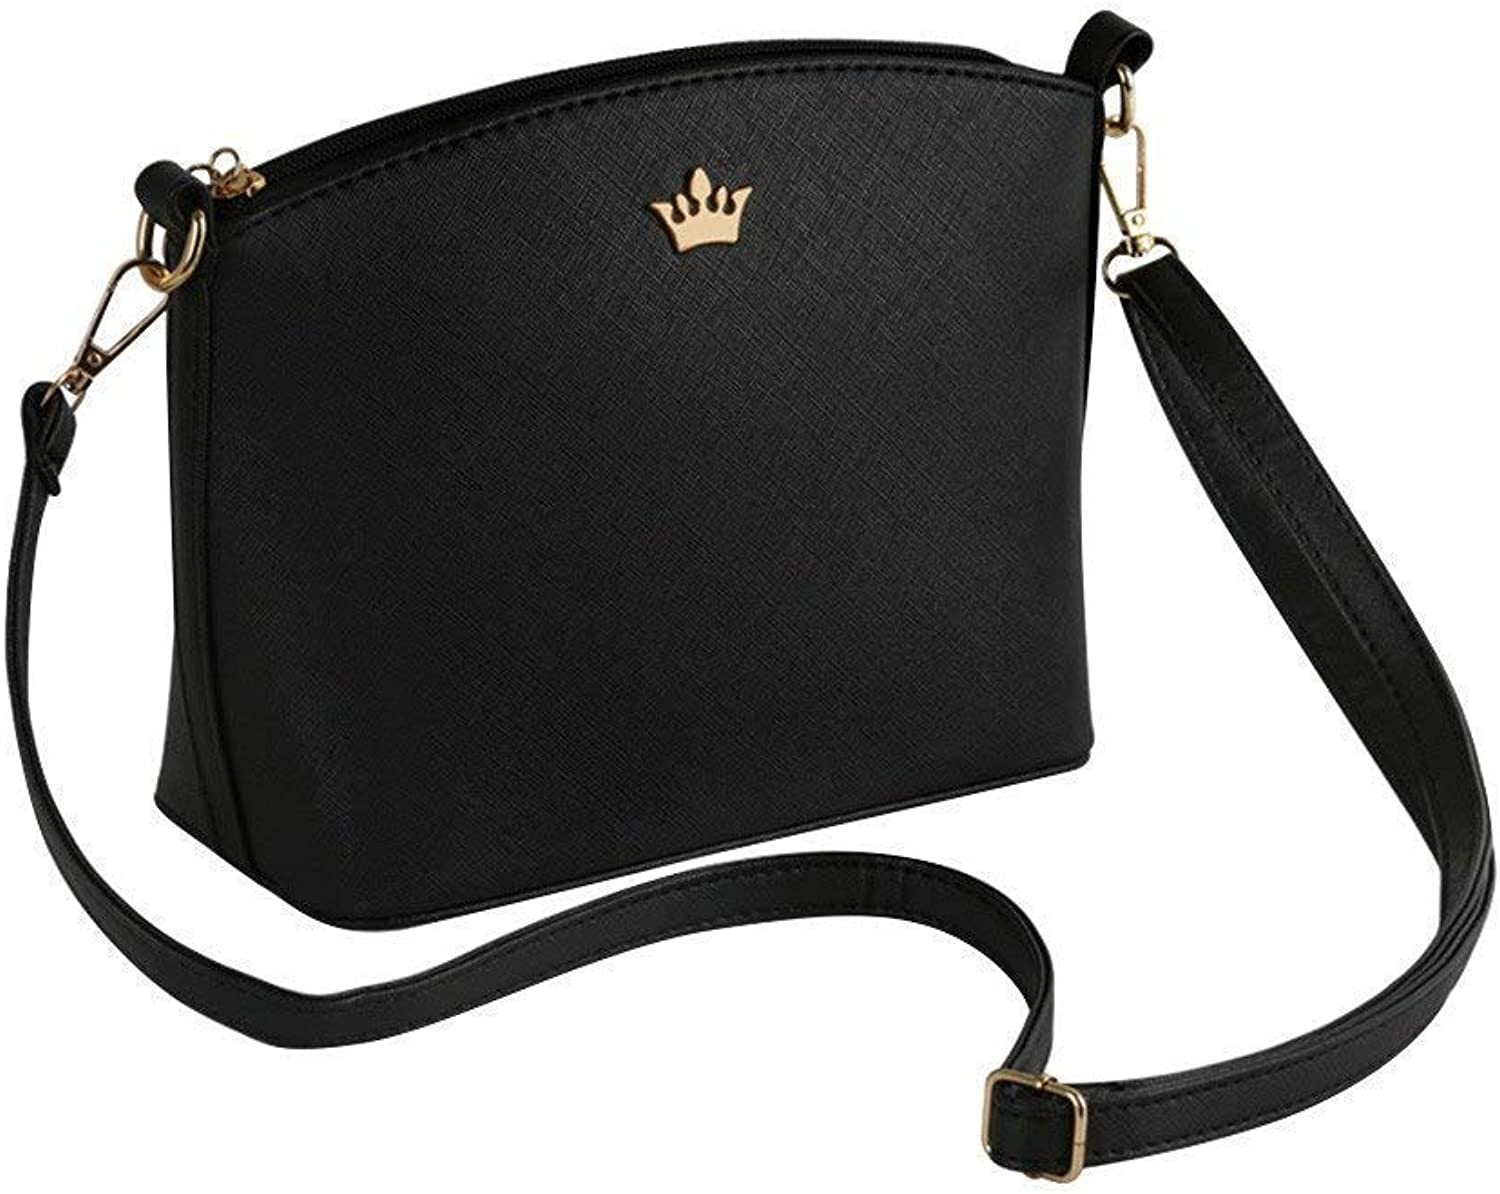 Bloomerang CONEED Small Imperial Crown Candy color Handbags Clutches Ladies Party Purse Women Crossbody Shoulder Messenger bagsd20w30x color Black